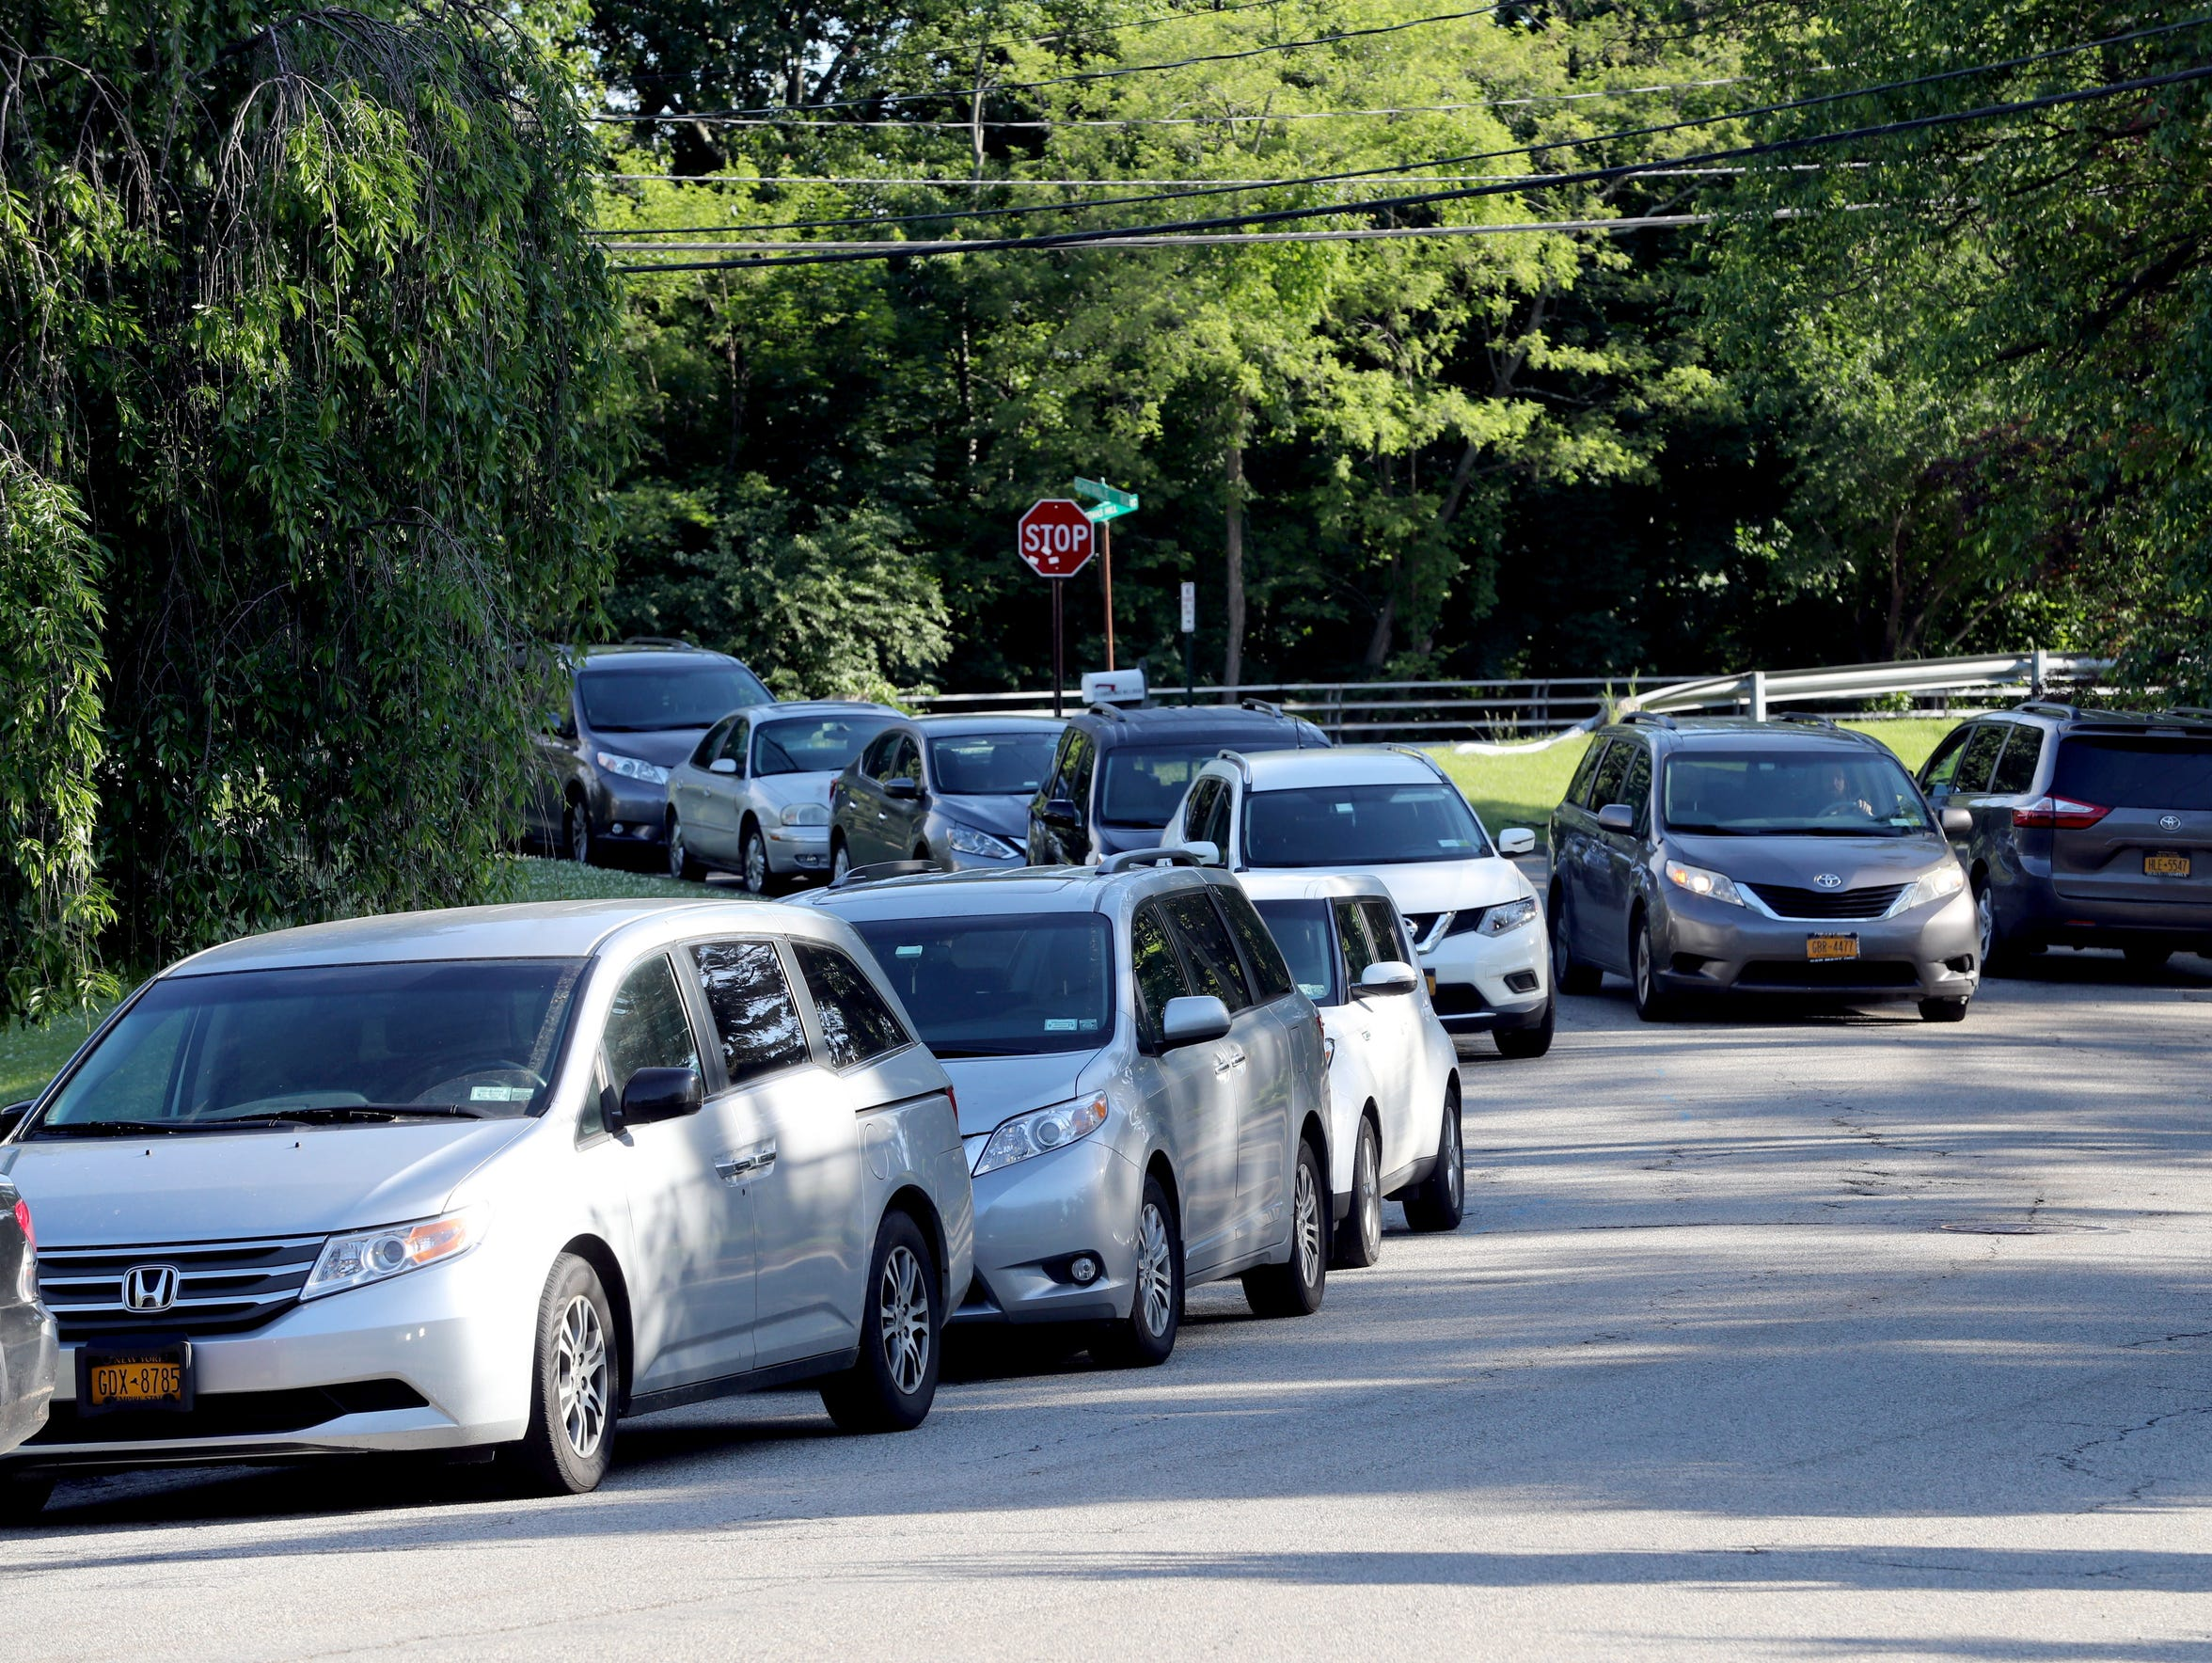 Cars pass each other on Echo Ridge Road in Airmont,